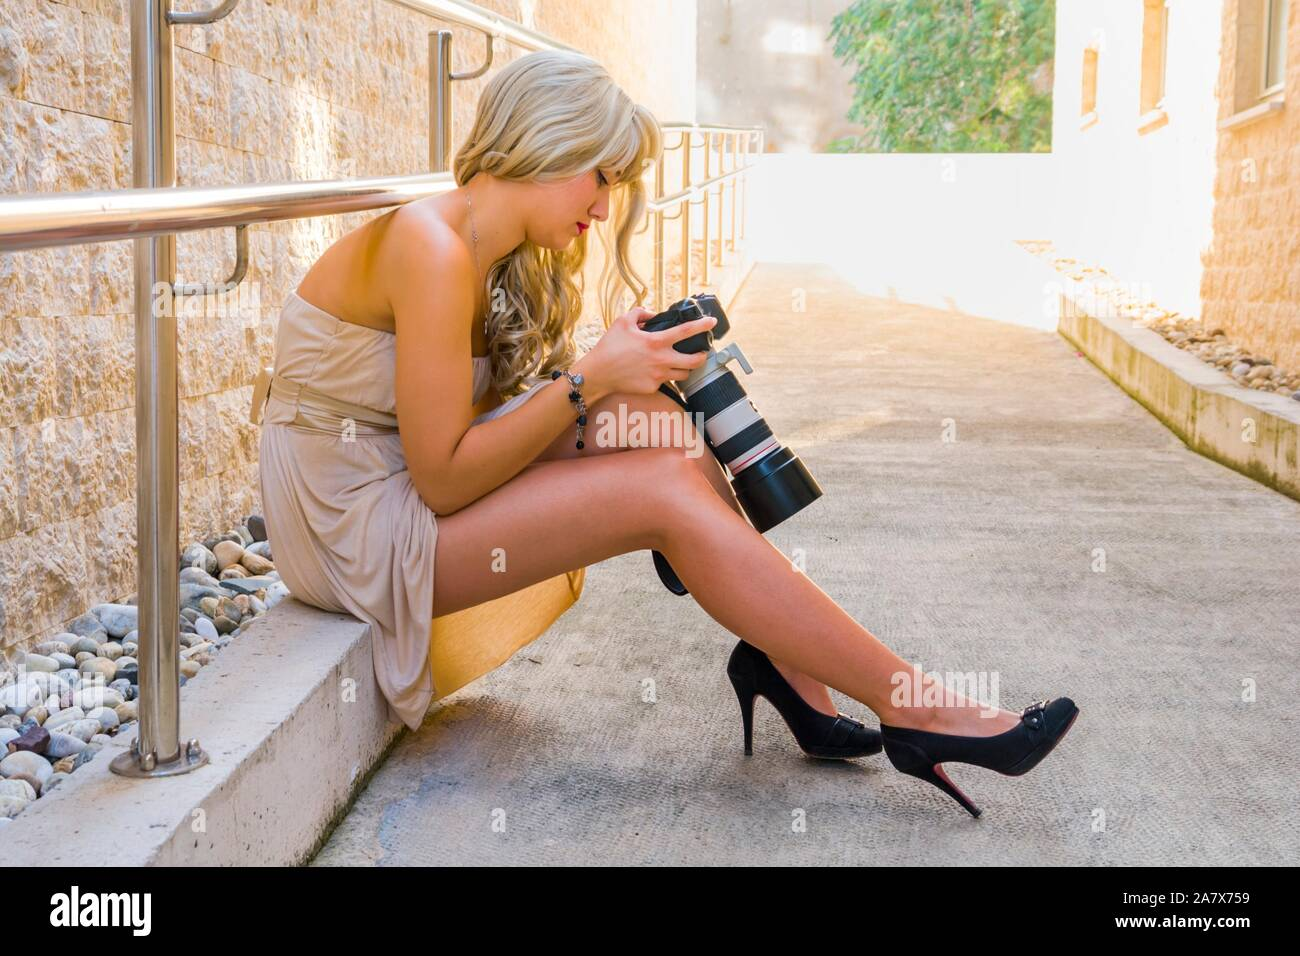 Female model is looking down checking reviewing after photoshoot images photos on hand holding DSLR camera back lcd screen seated Stock Photo